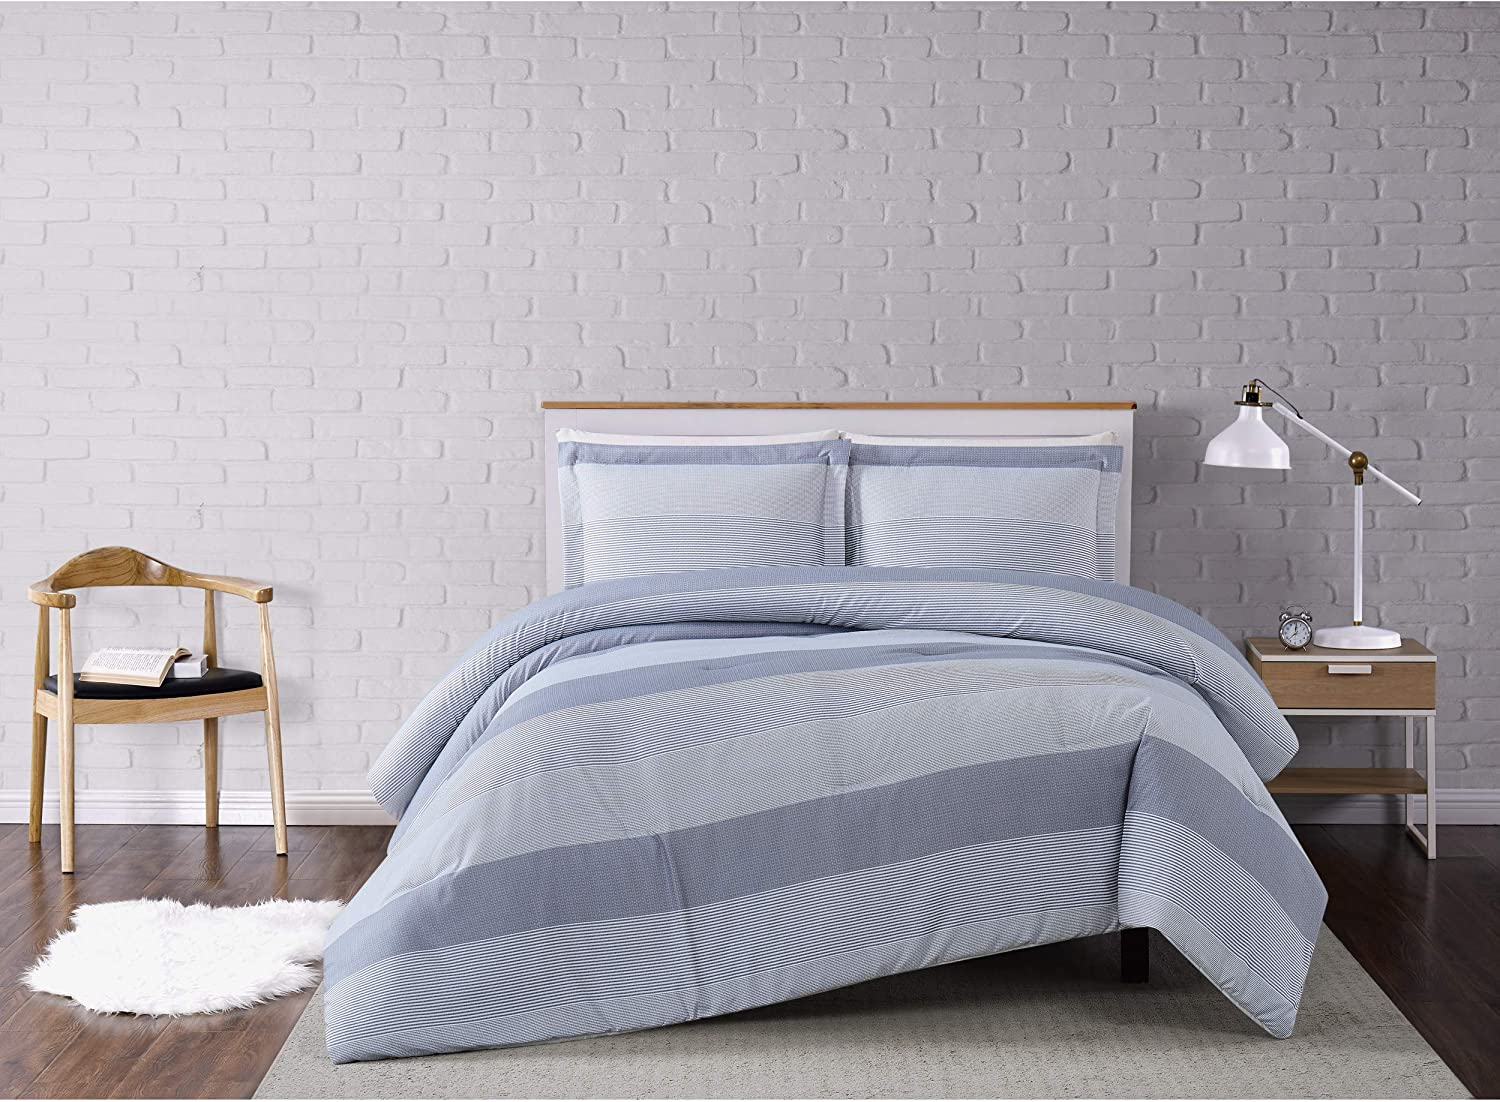 Truly Soft Everyday Truly Soft Multi Stripe Comforter Set King Grey Home Kitchen